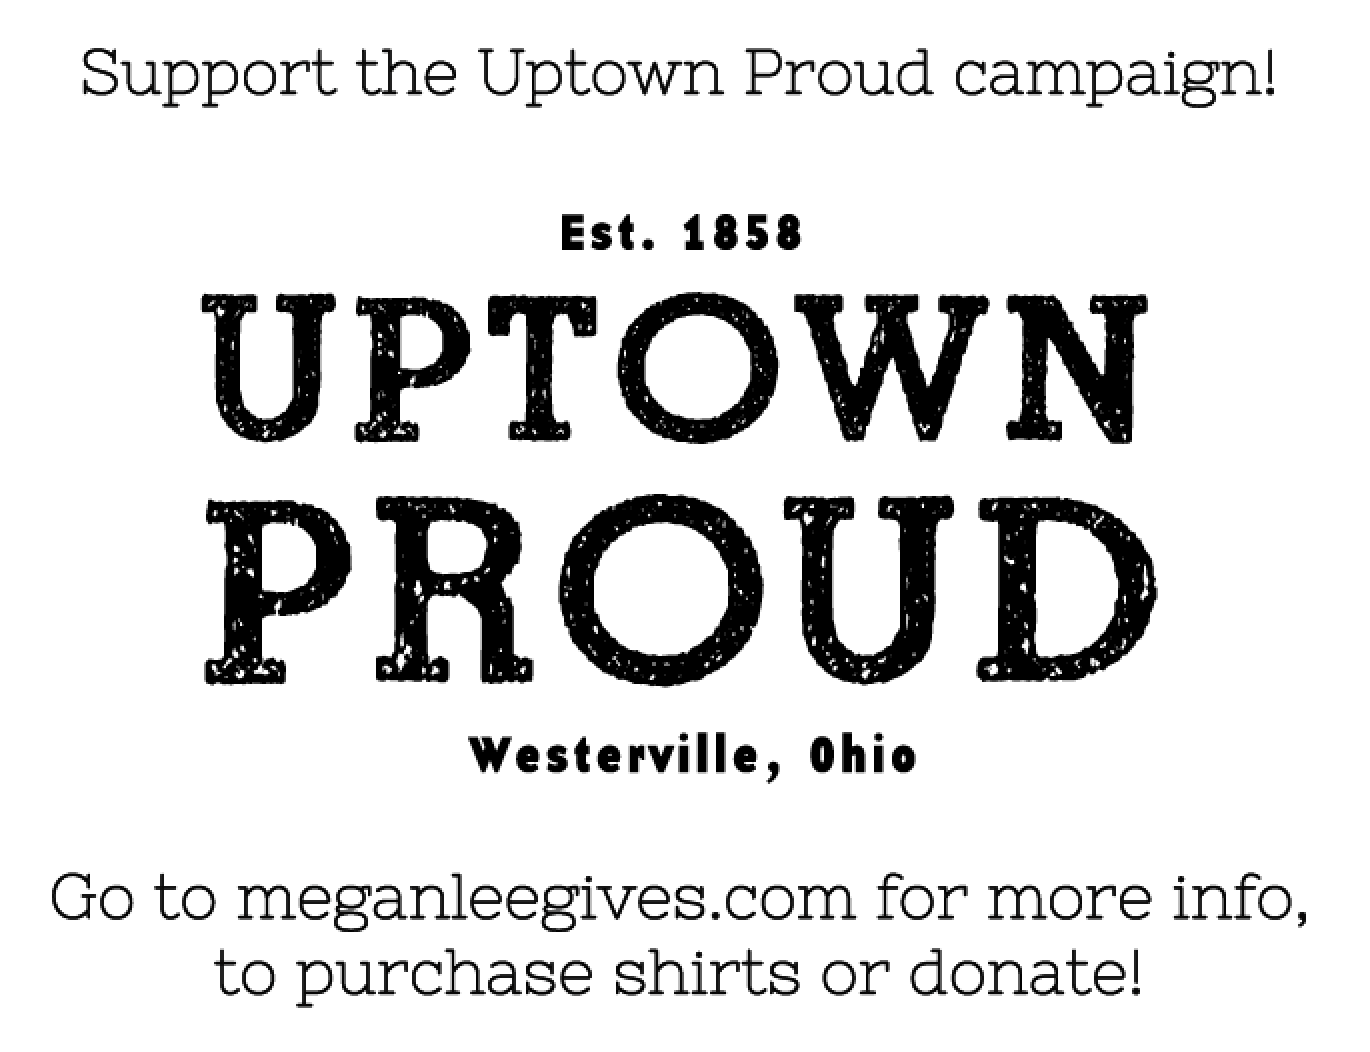 Uptown Proud Sign